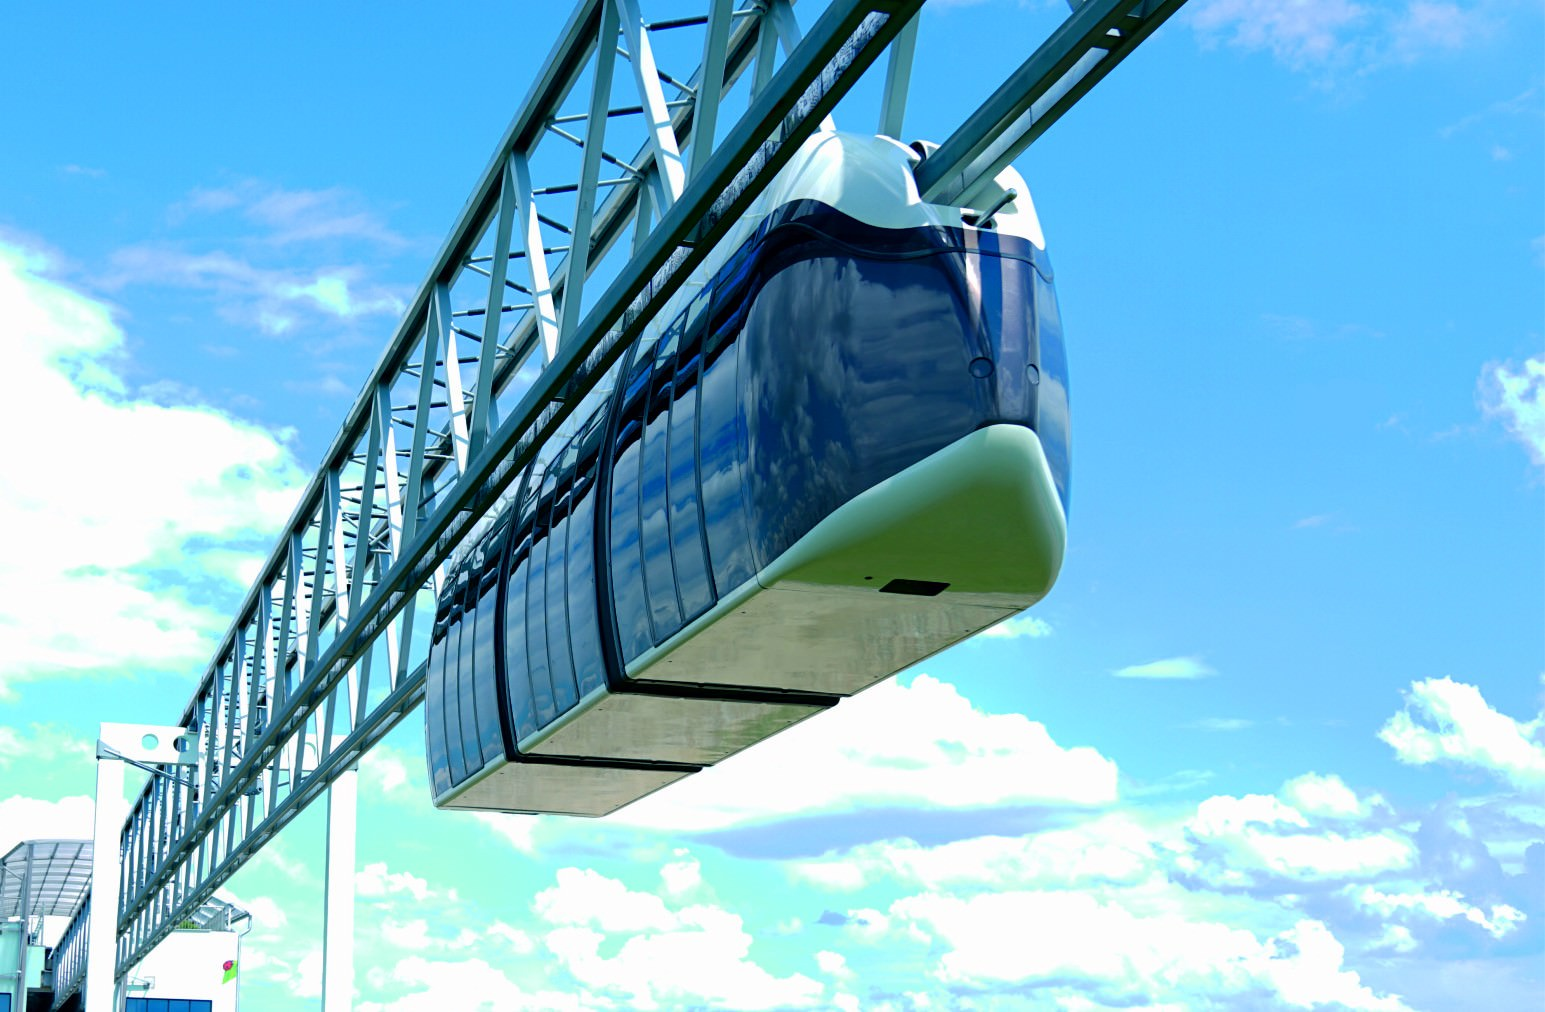 MyFin: SkyWay Is Beyond the Bounds of Public Reporting